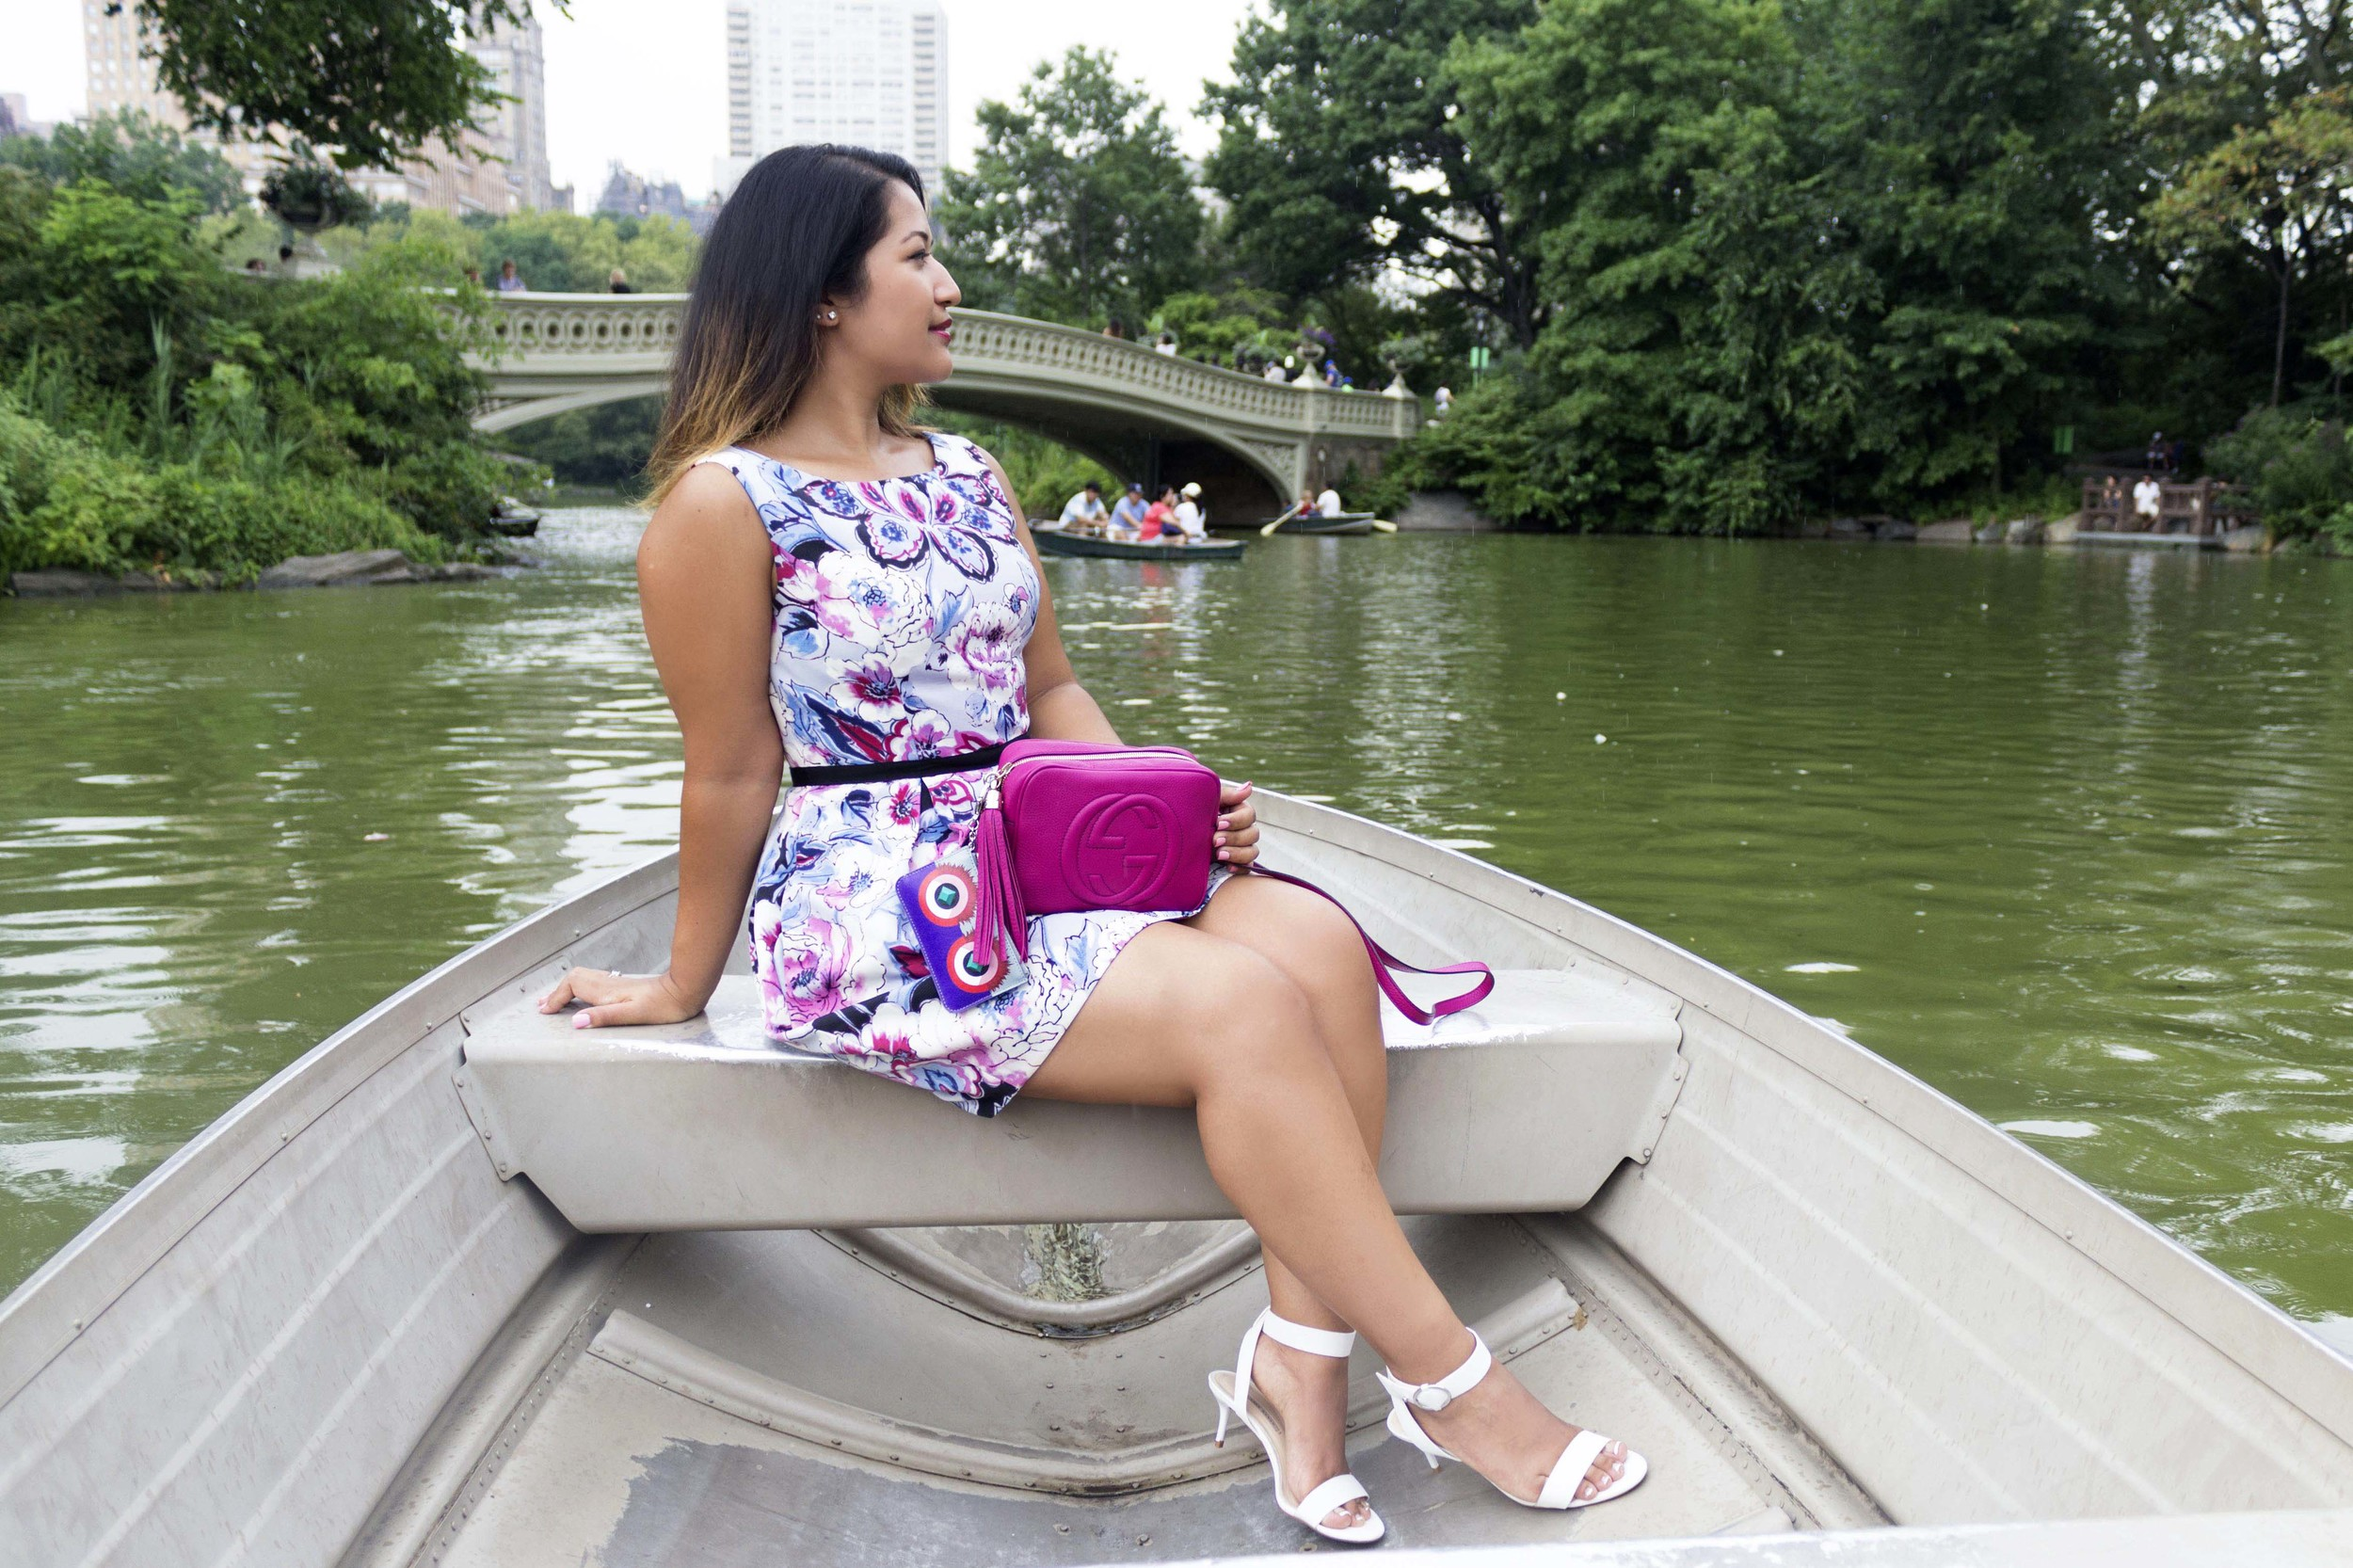 Floral on a Boat7.jpg